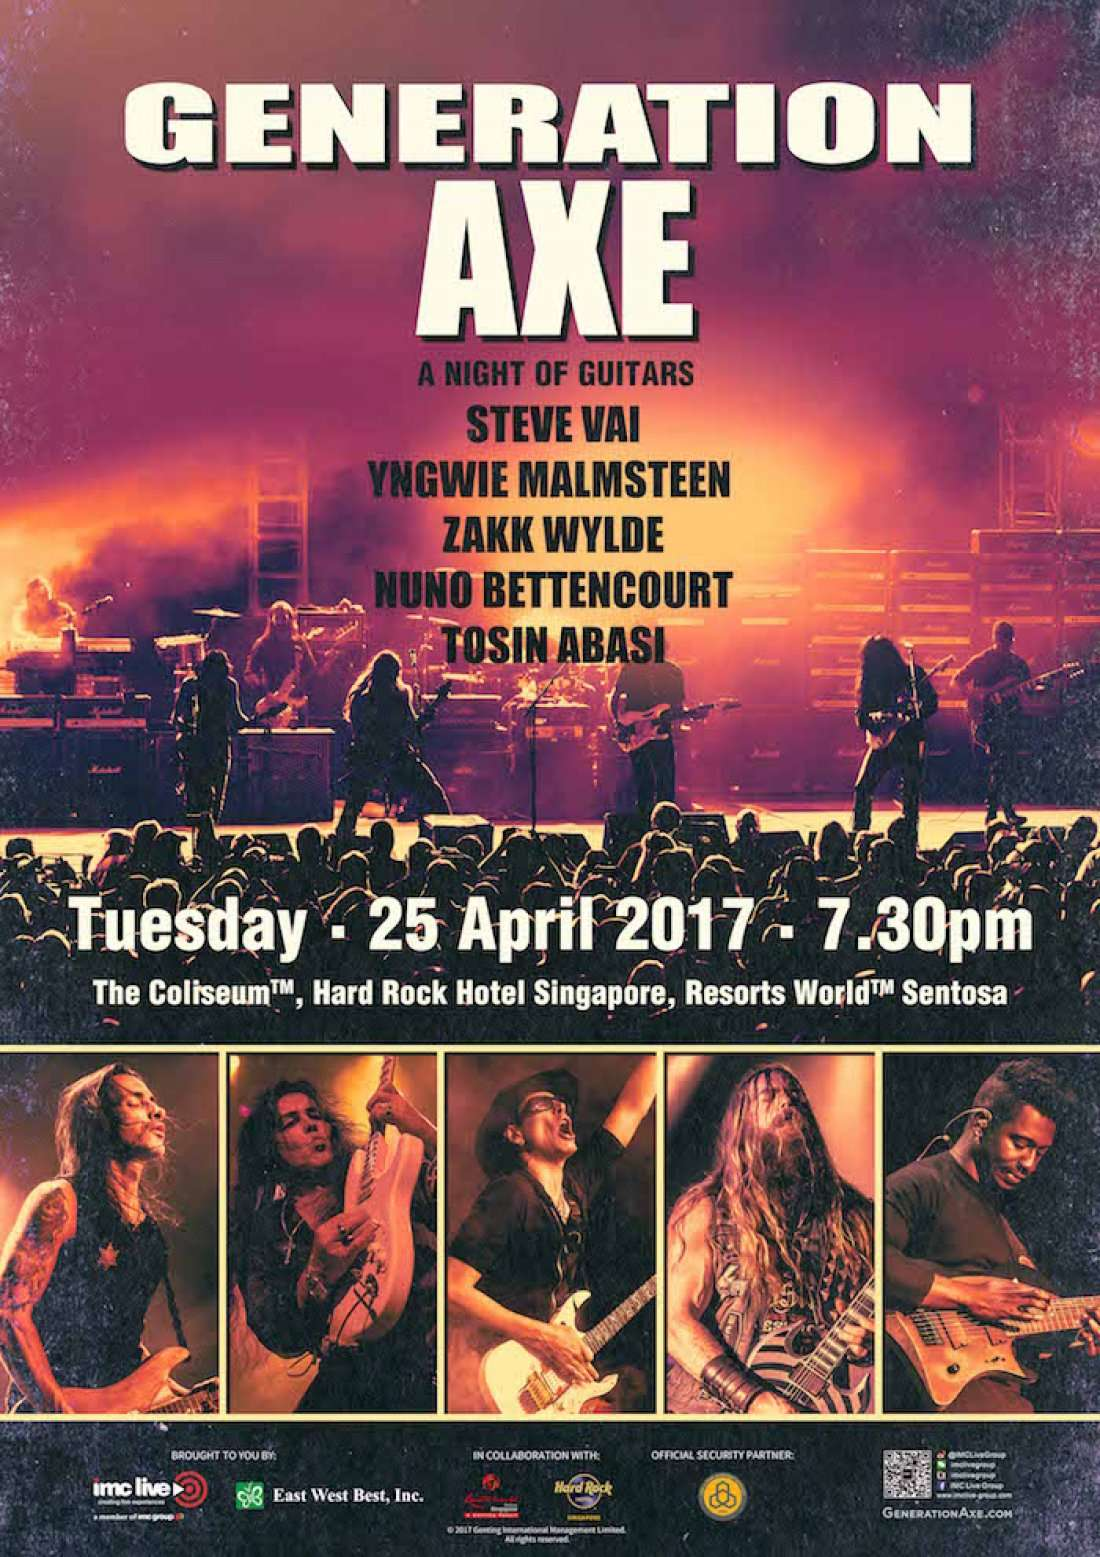 generation axe - a night of guitars live concert in singapore at